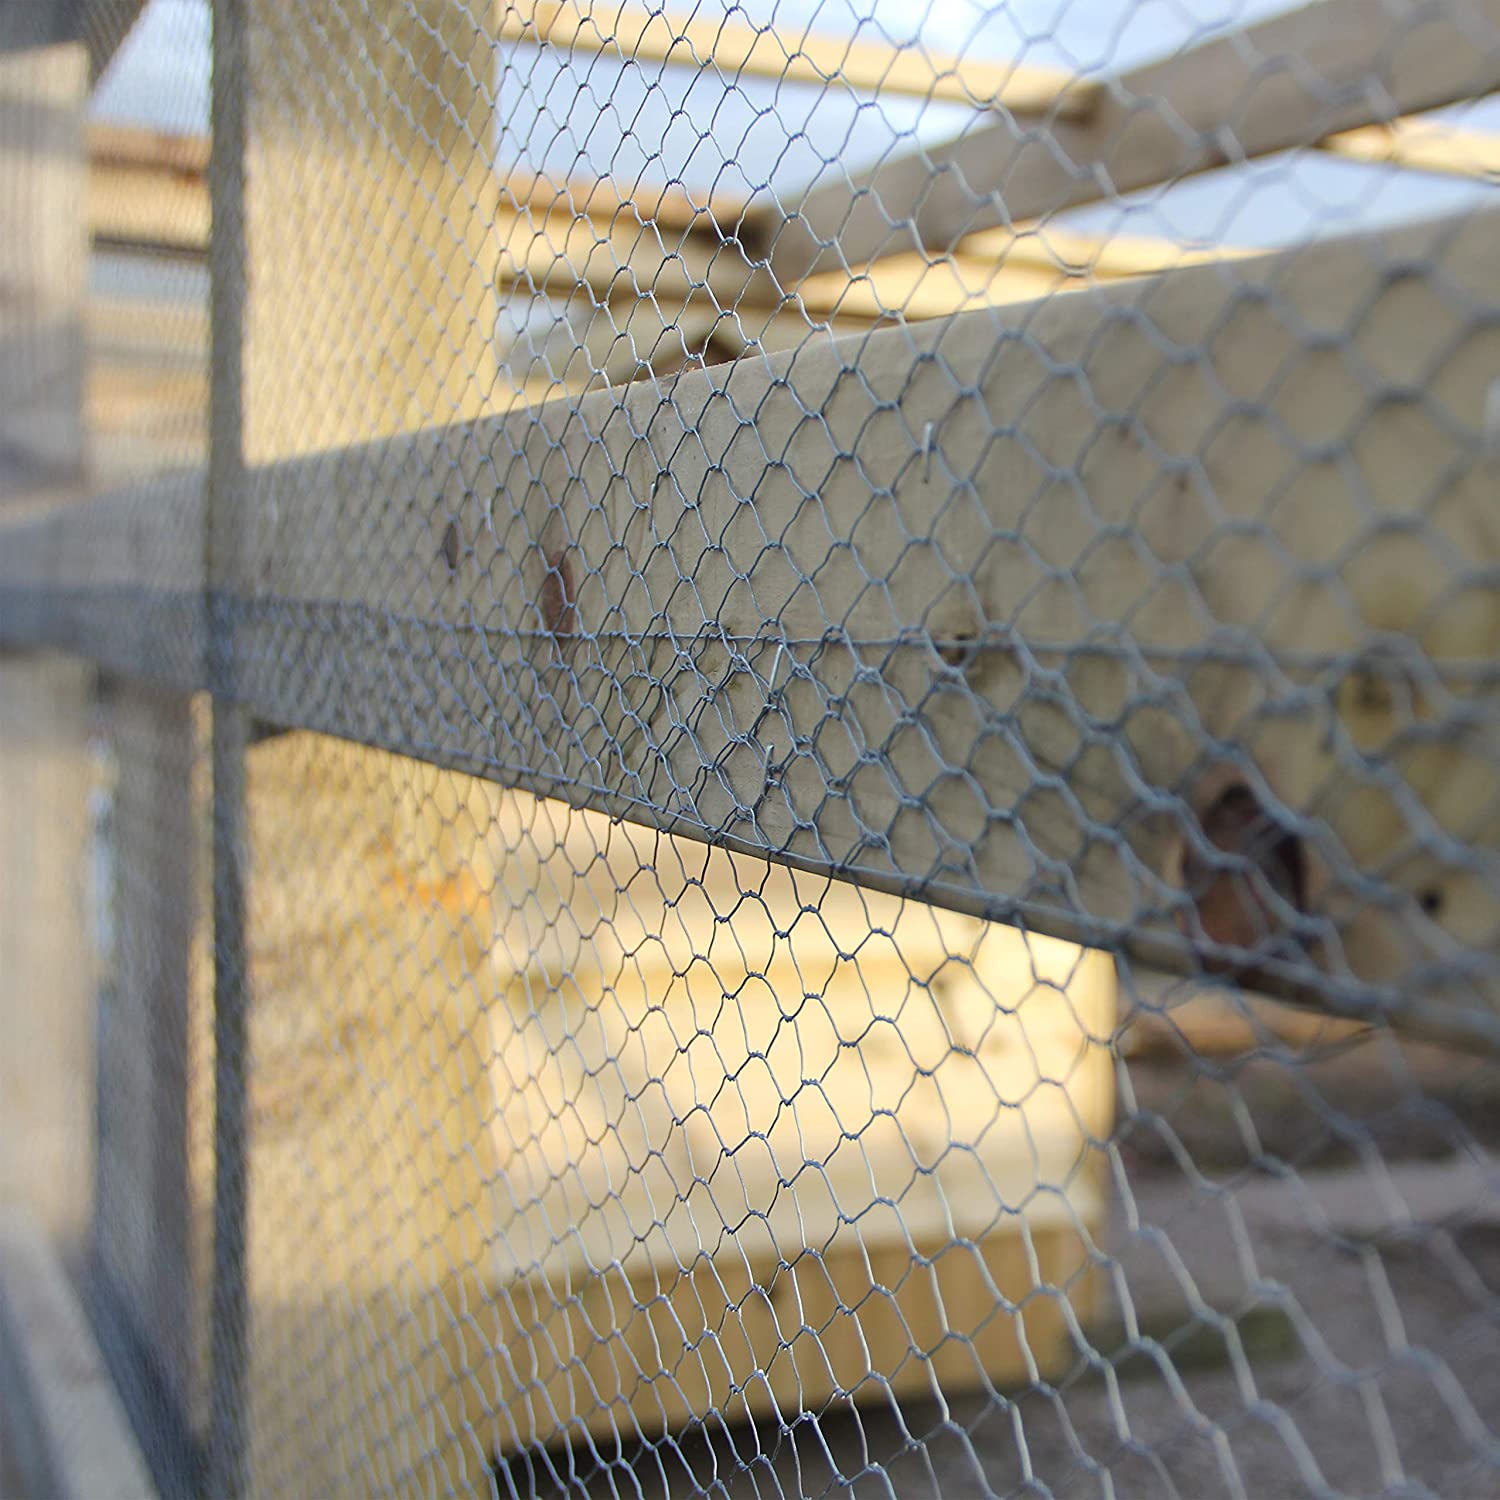 The Mesh Company Chicken Rabbit Wire Mesh Animal Fence Galvanised Steel Metal Garden Netting Fencing 50mm 2 Hole 900mm x 25m Roll